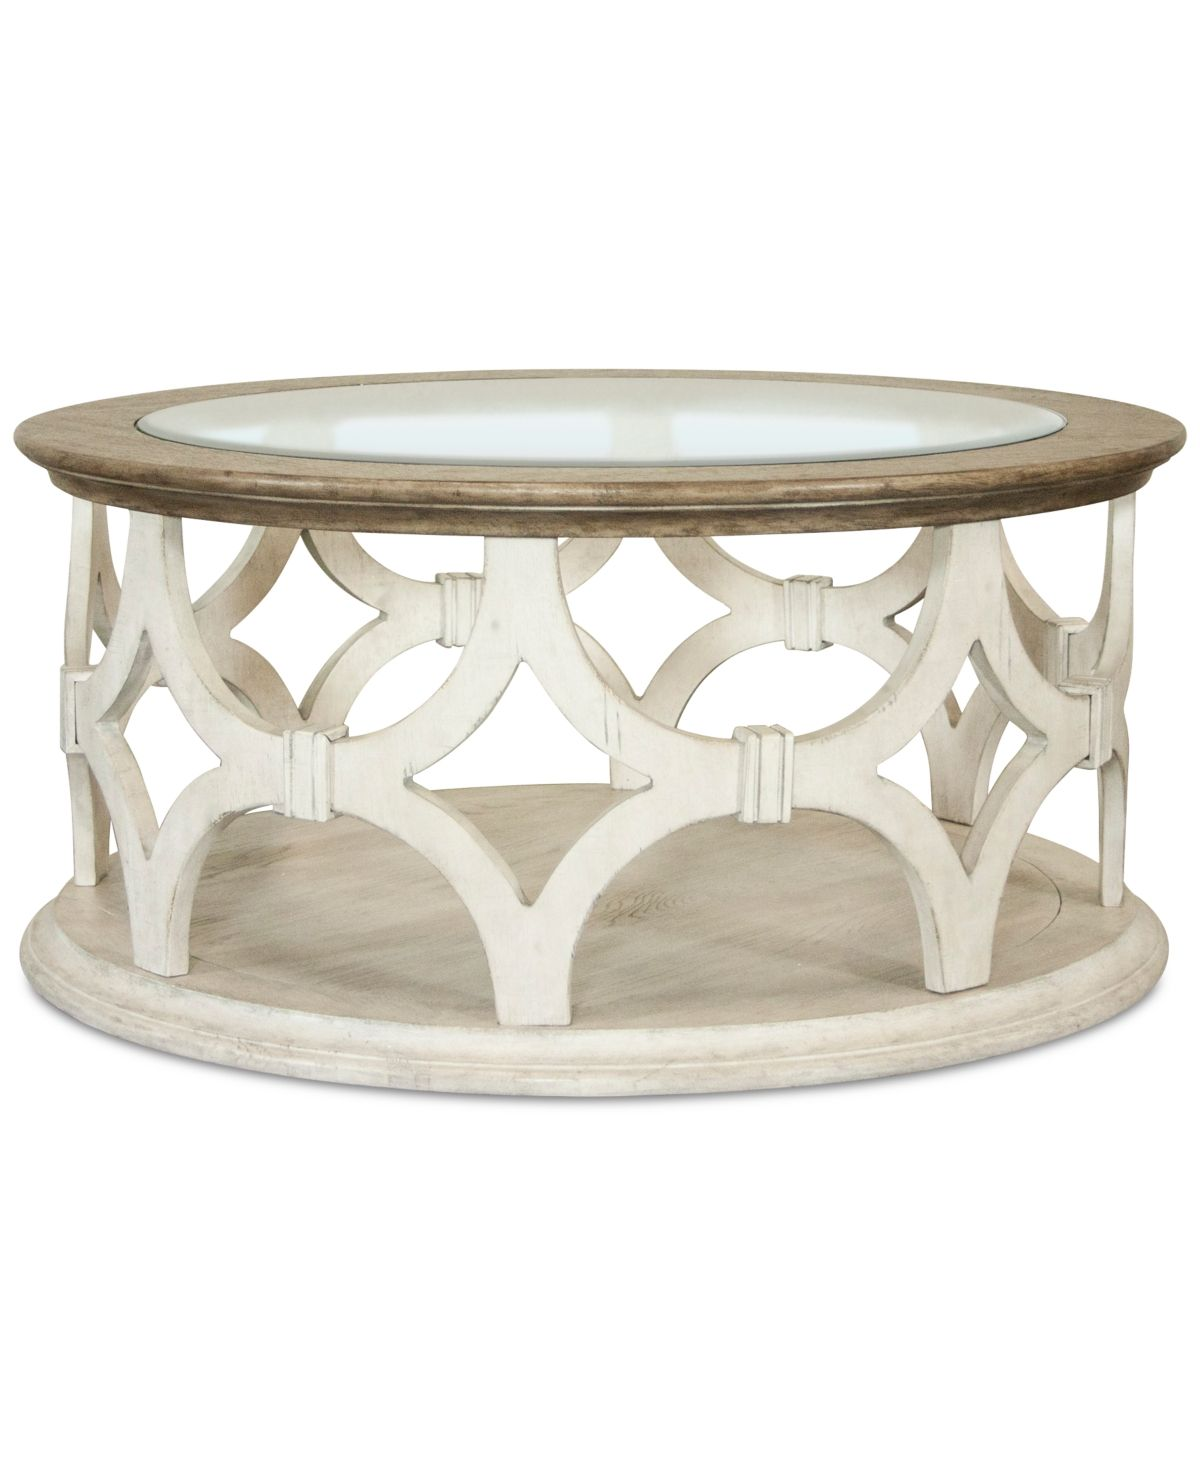 Pin By Imy Qasem On Art In 2021 Coffee Table Farmhouse Round Coffee Table Coffee Table [ 1467 x 1200 Pixel ]